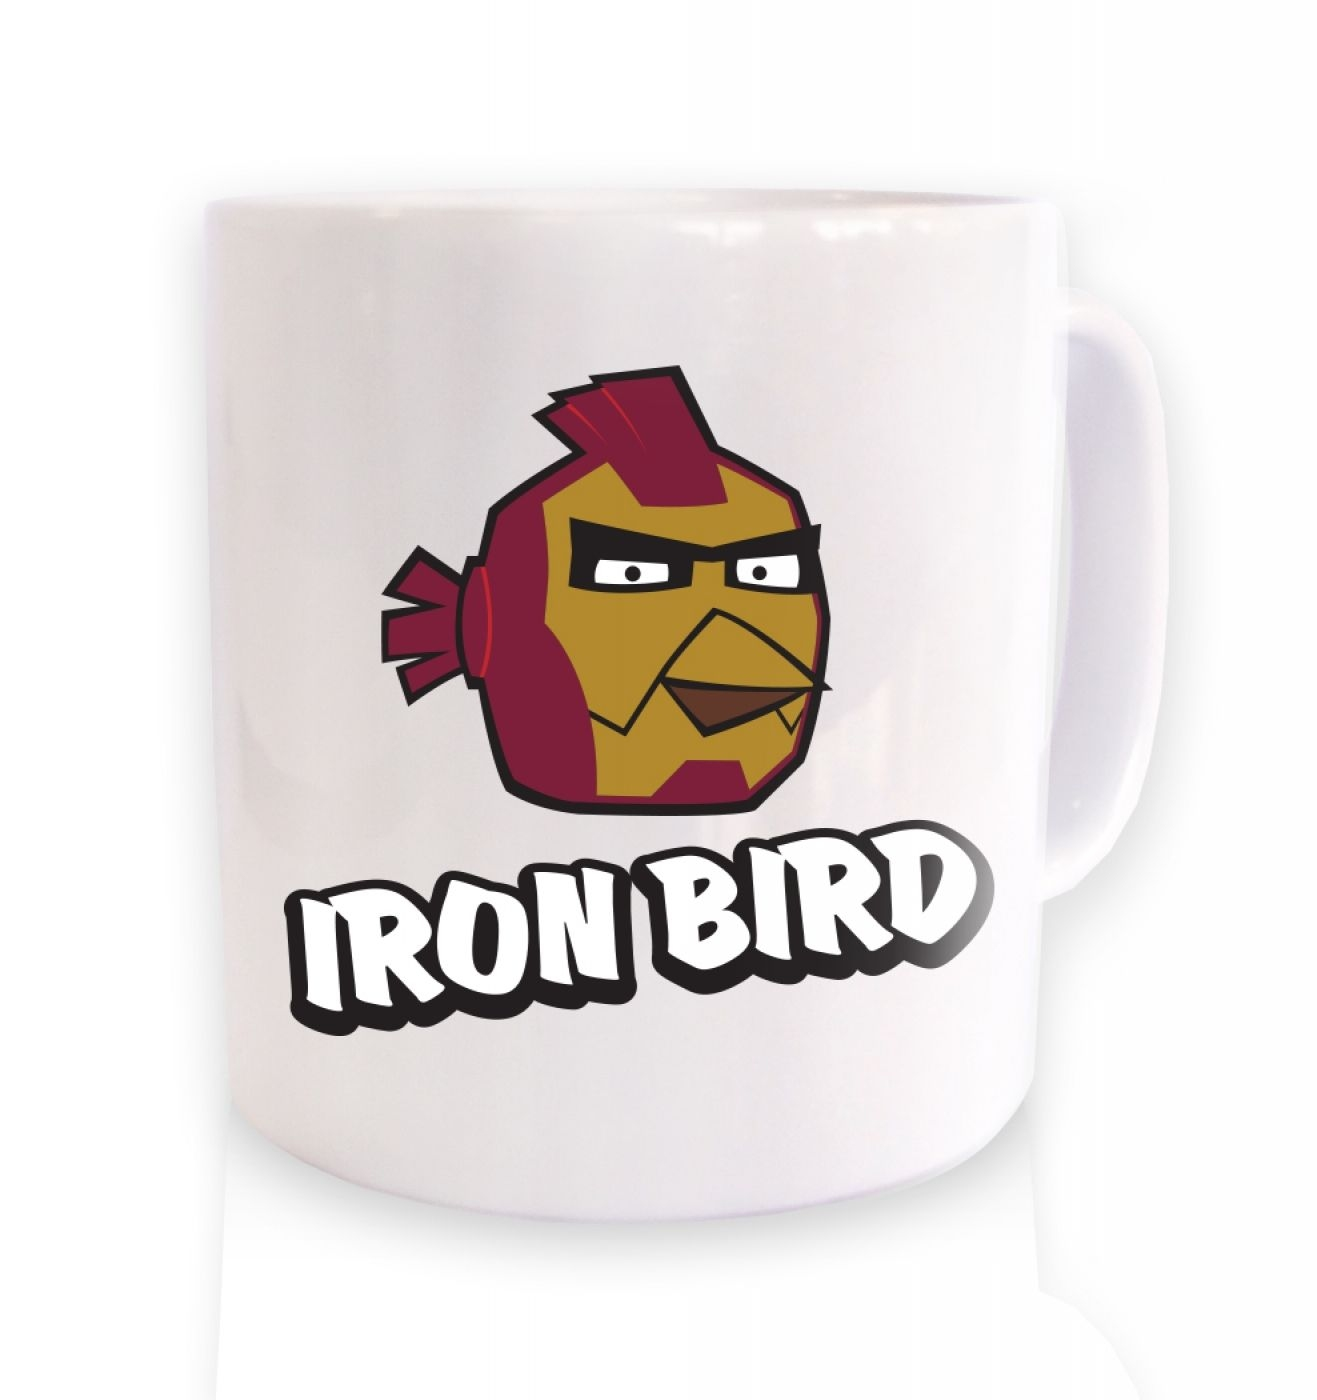 Iron Bird Mug Inspired By Avengers, Angry Birds And Iron Man